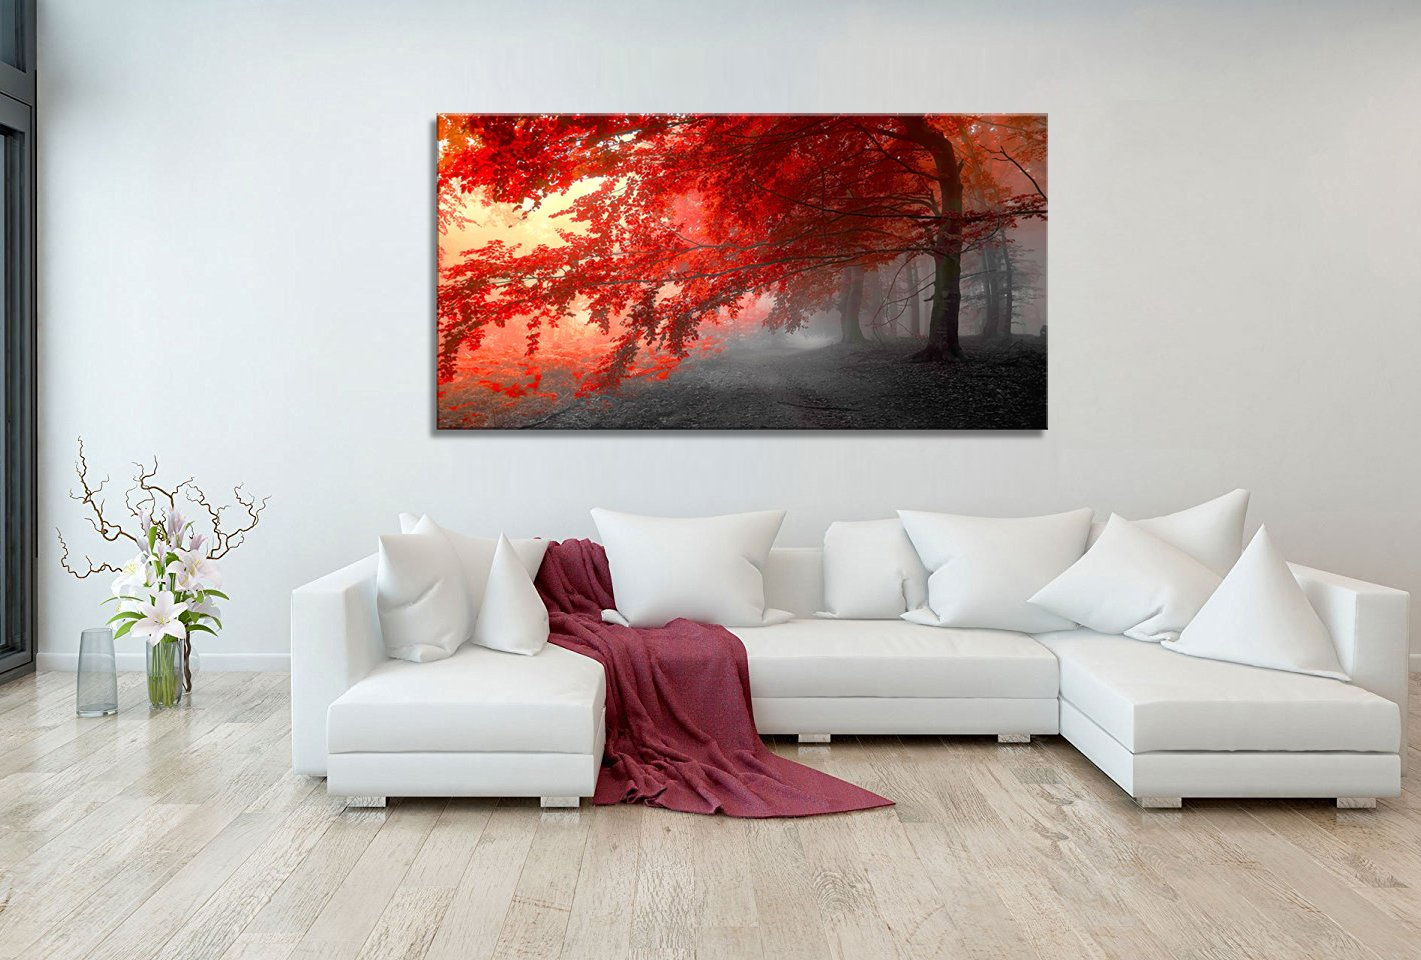 Amazon.com: wall art Stretched Framed Ready Hang Flower Landscape ...